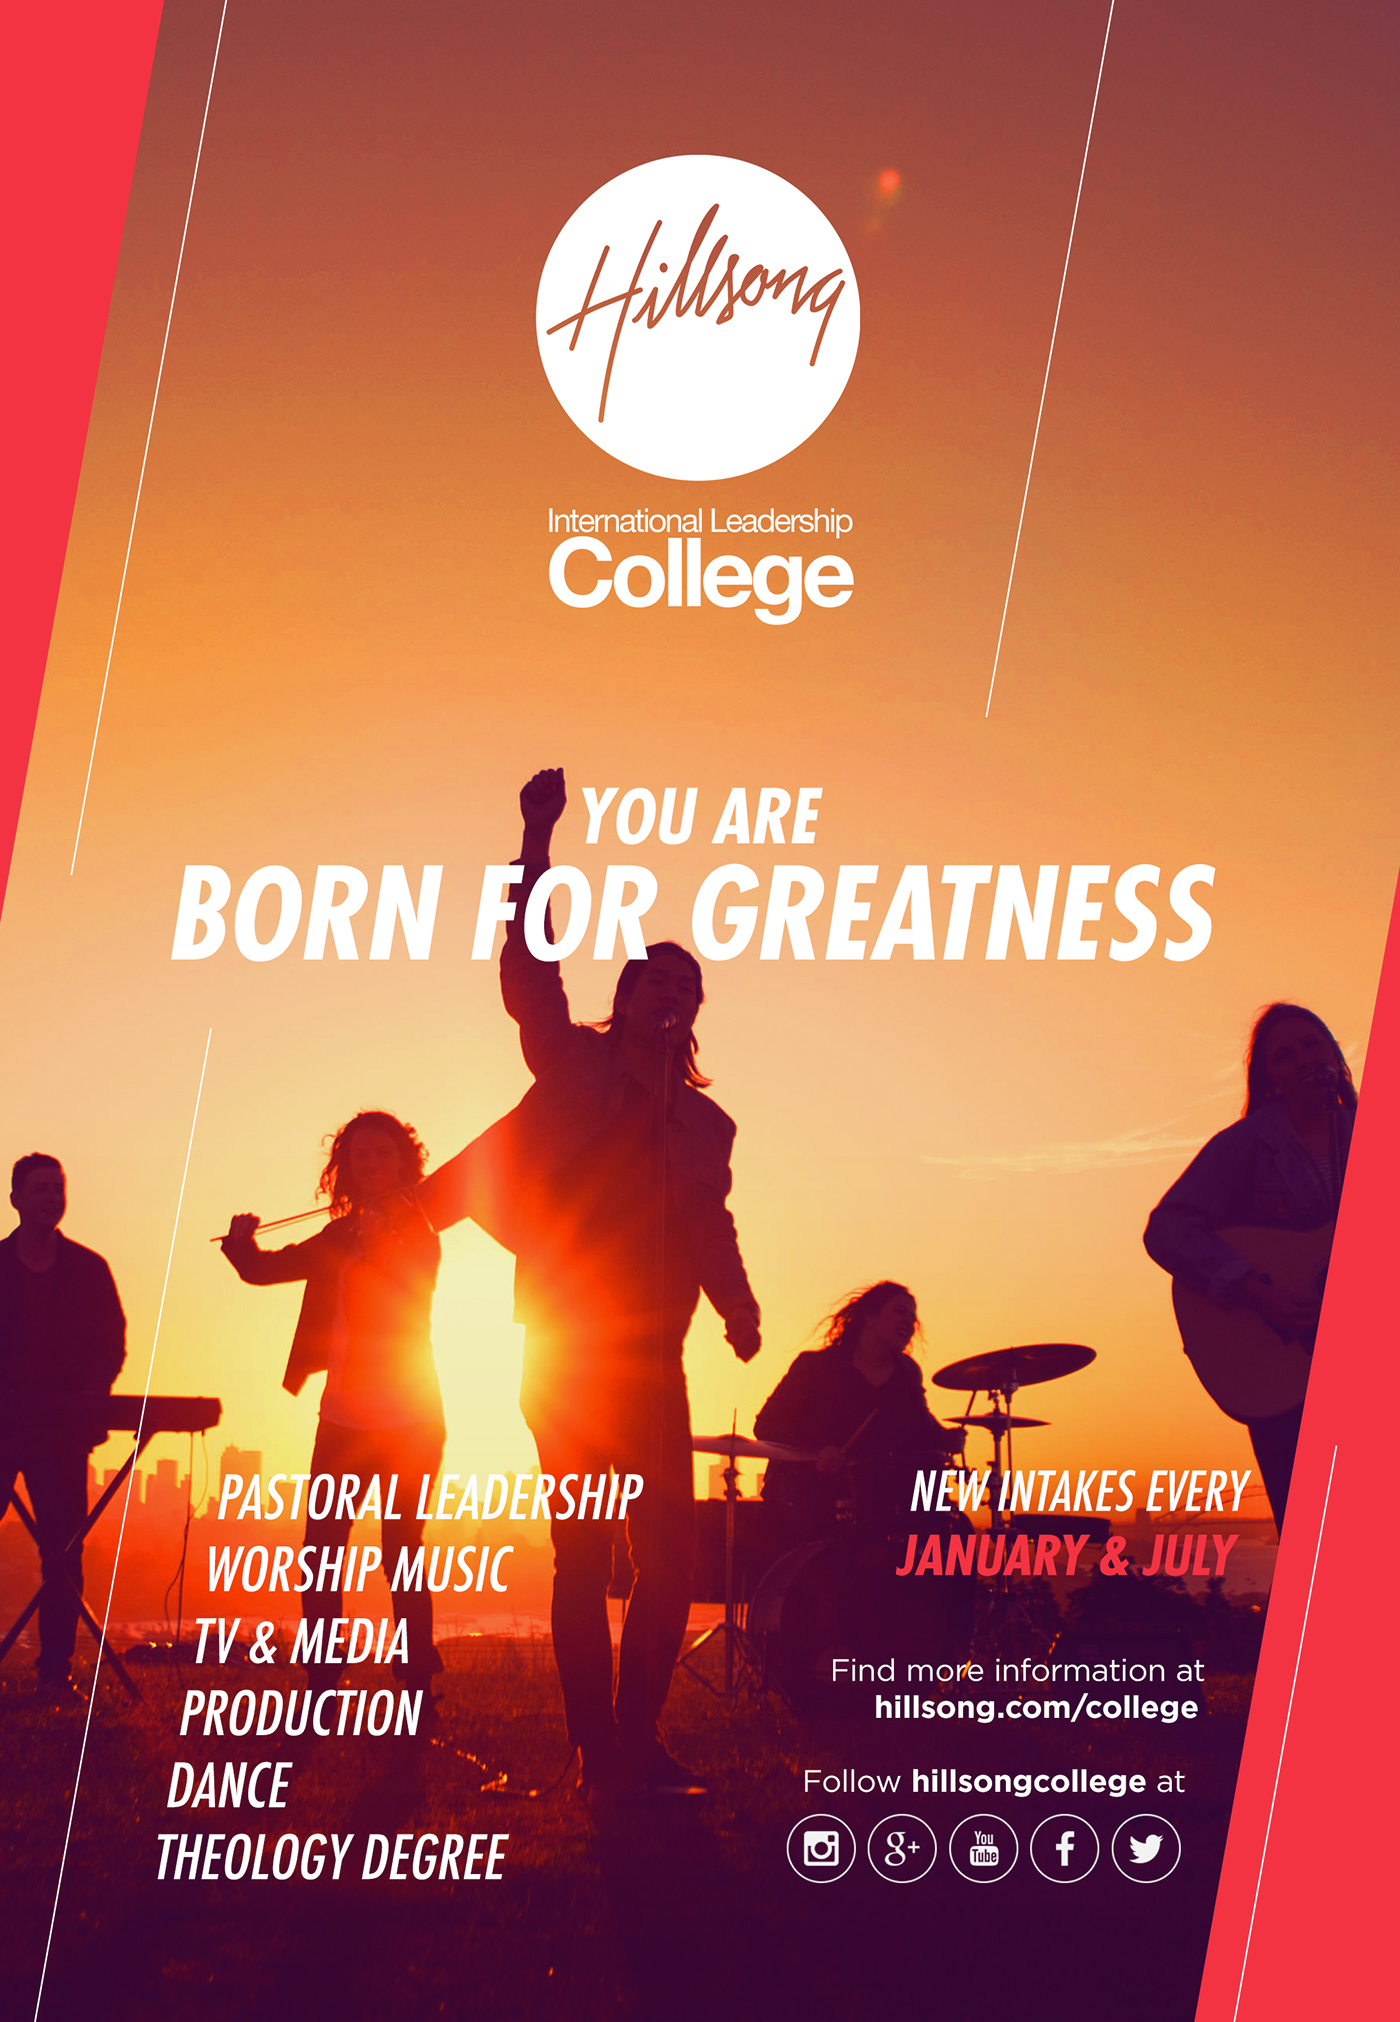 Filter Photoshop Campaign 'born For Greatness' - Hillsong College On Behance